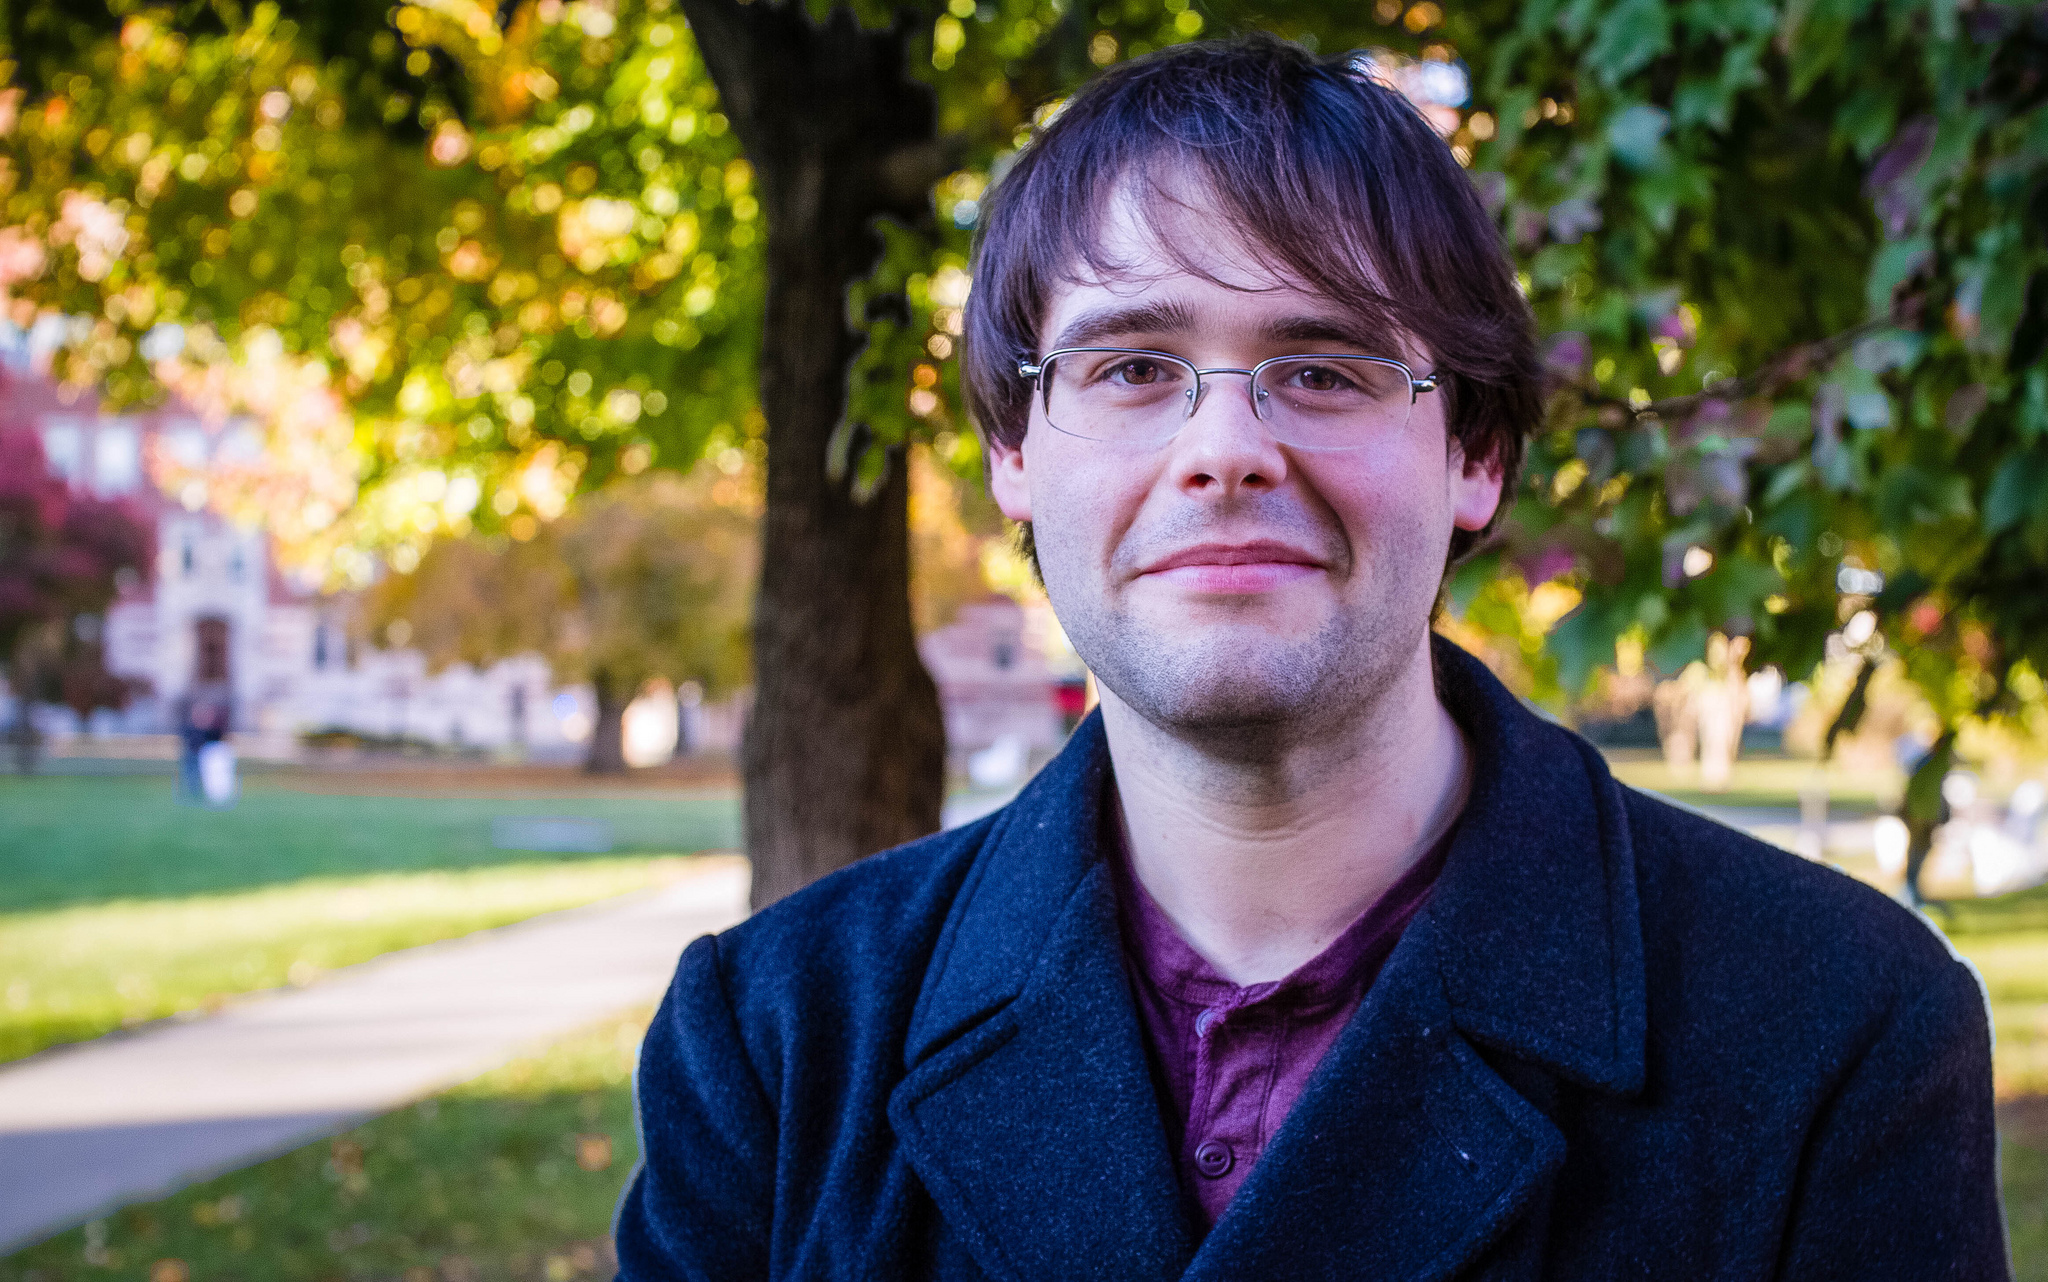 Bouchard Discovers Universality In Music And Writing The